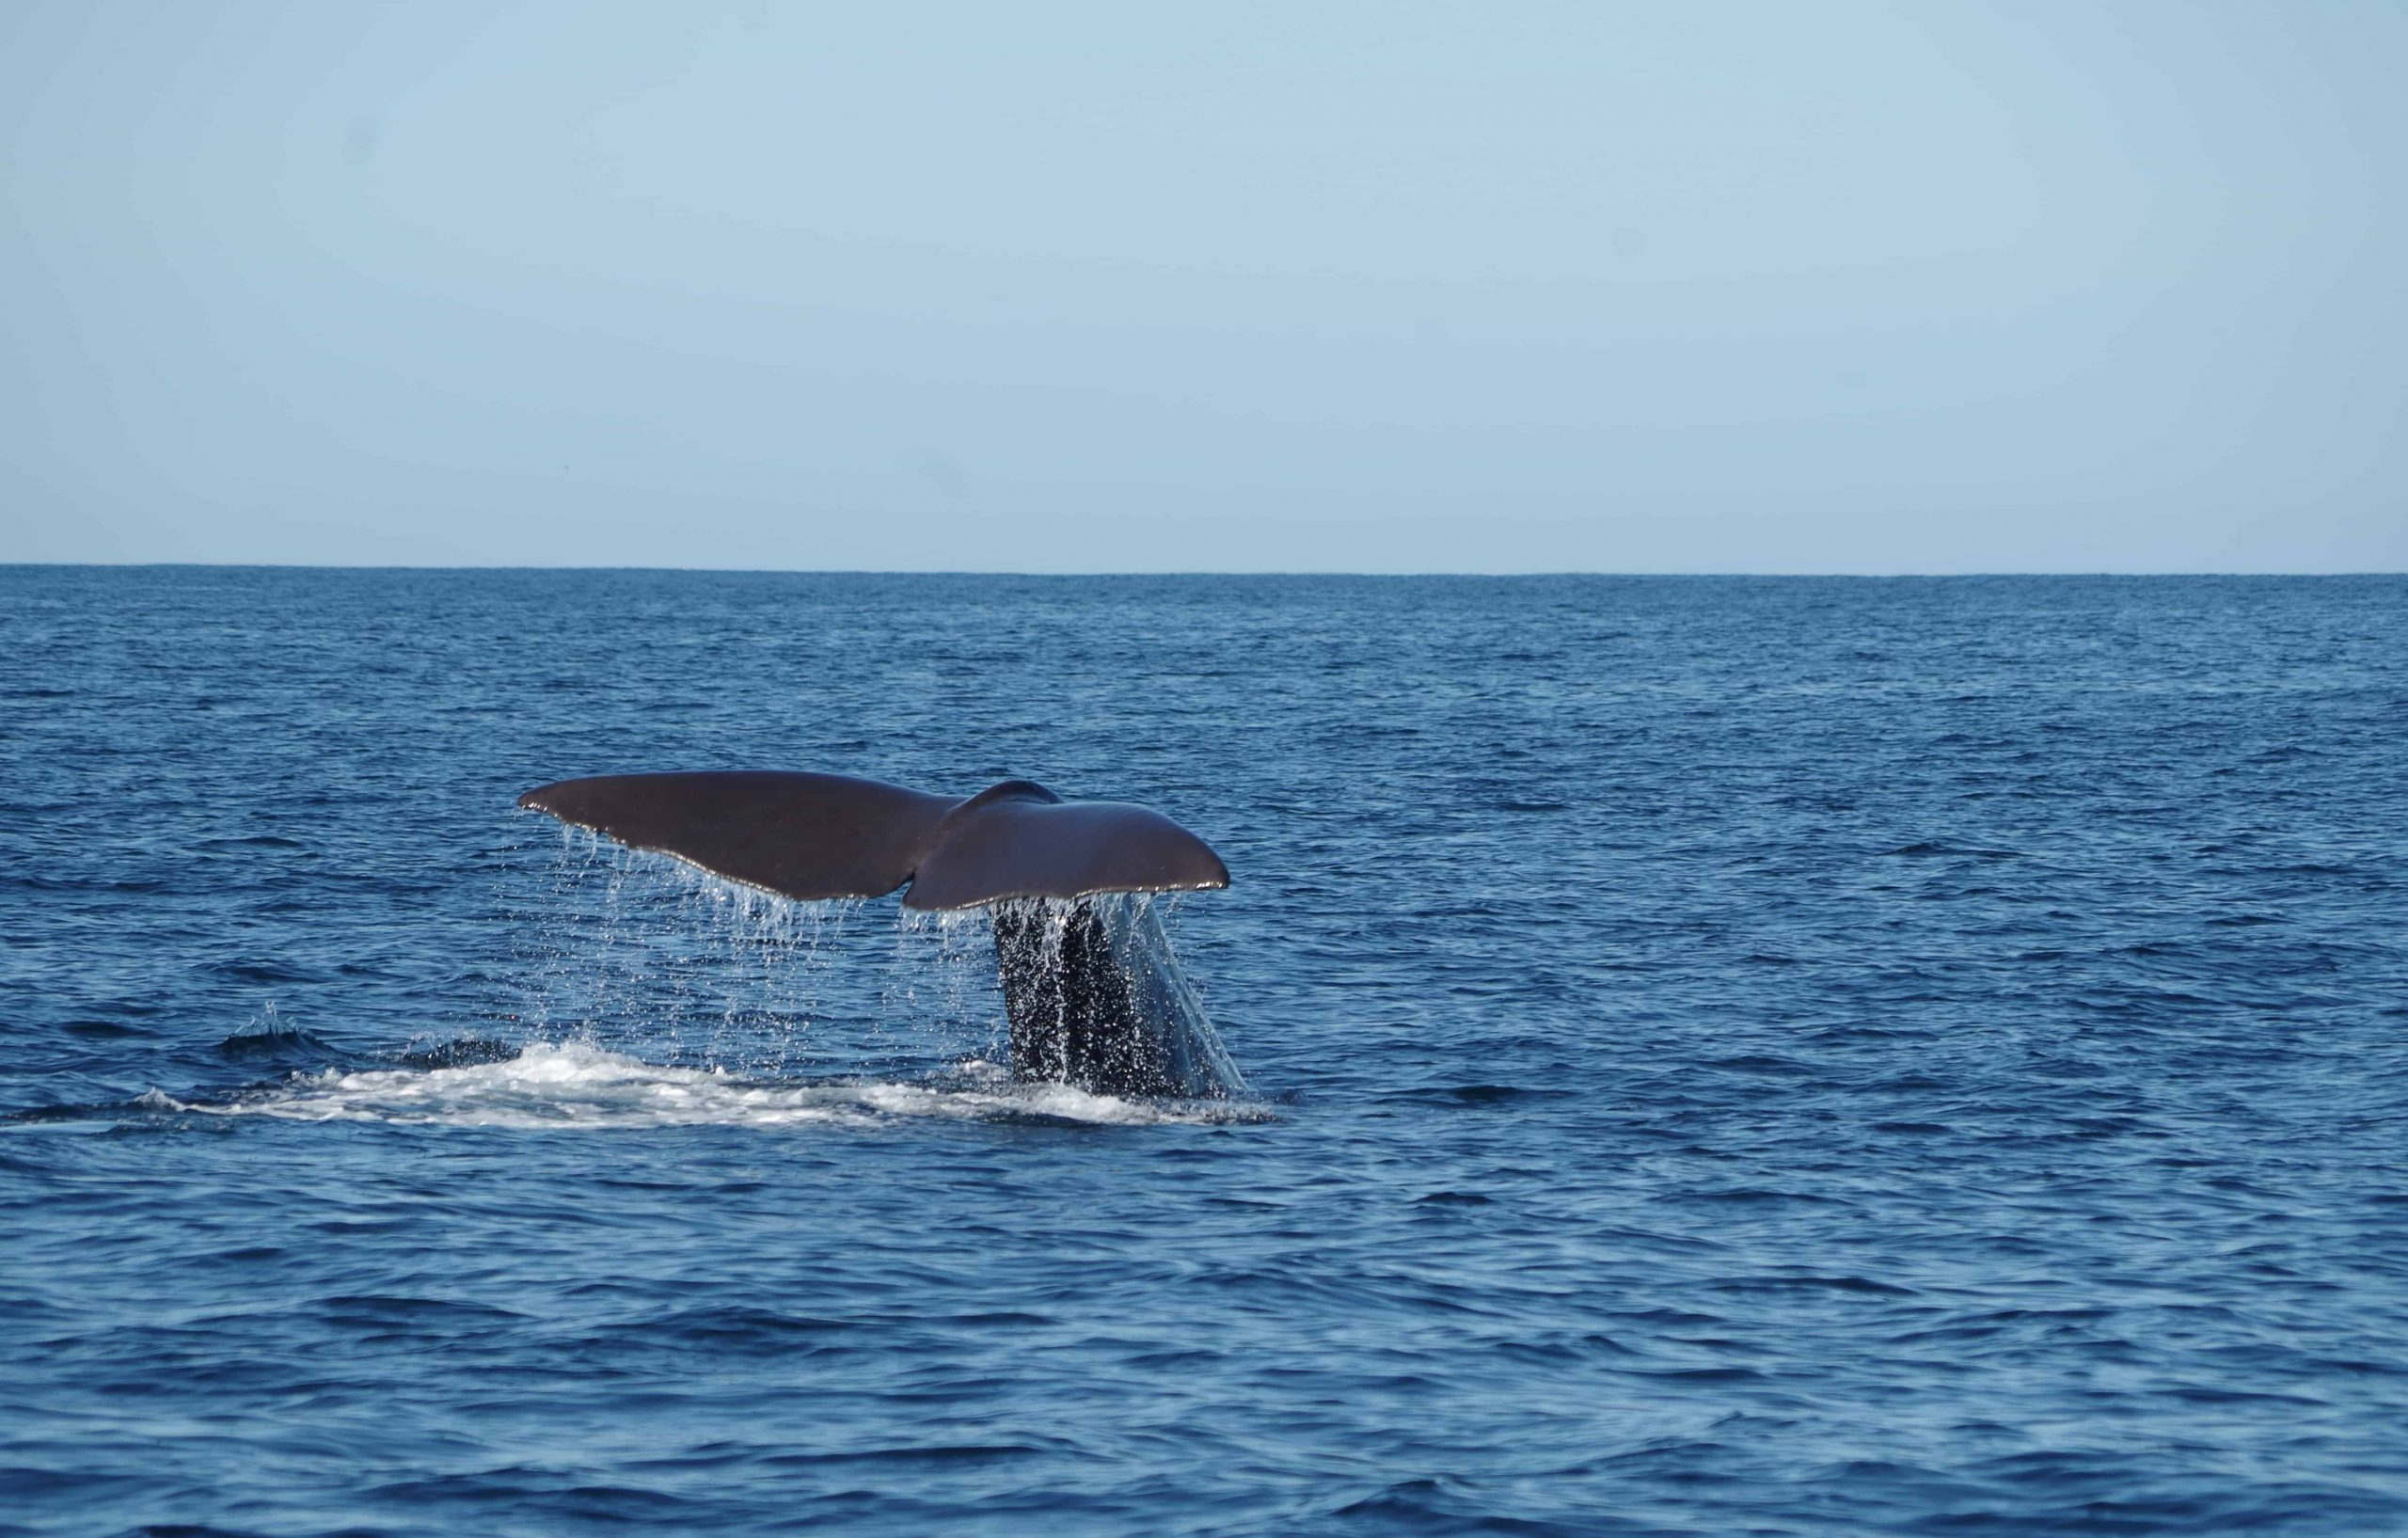 The tail of a whale in the ocean near Kaikoura, New Zealand